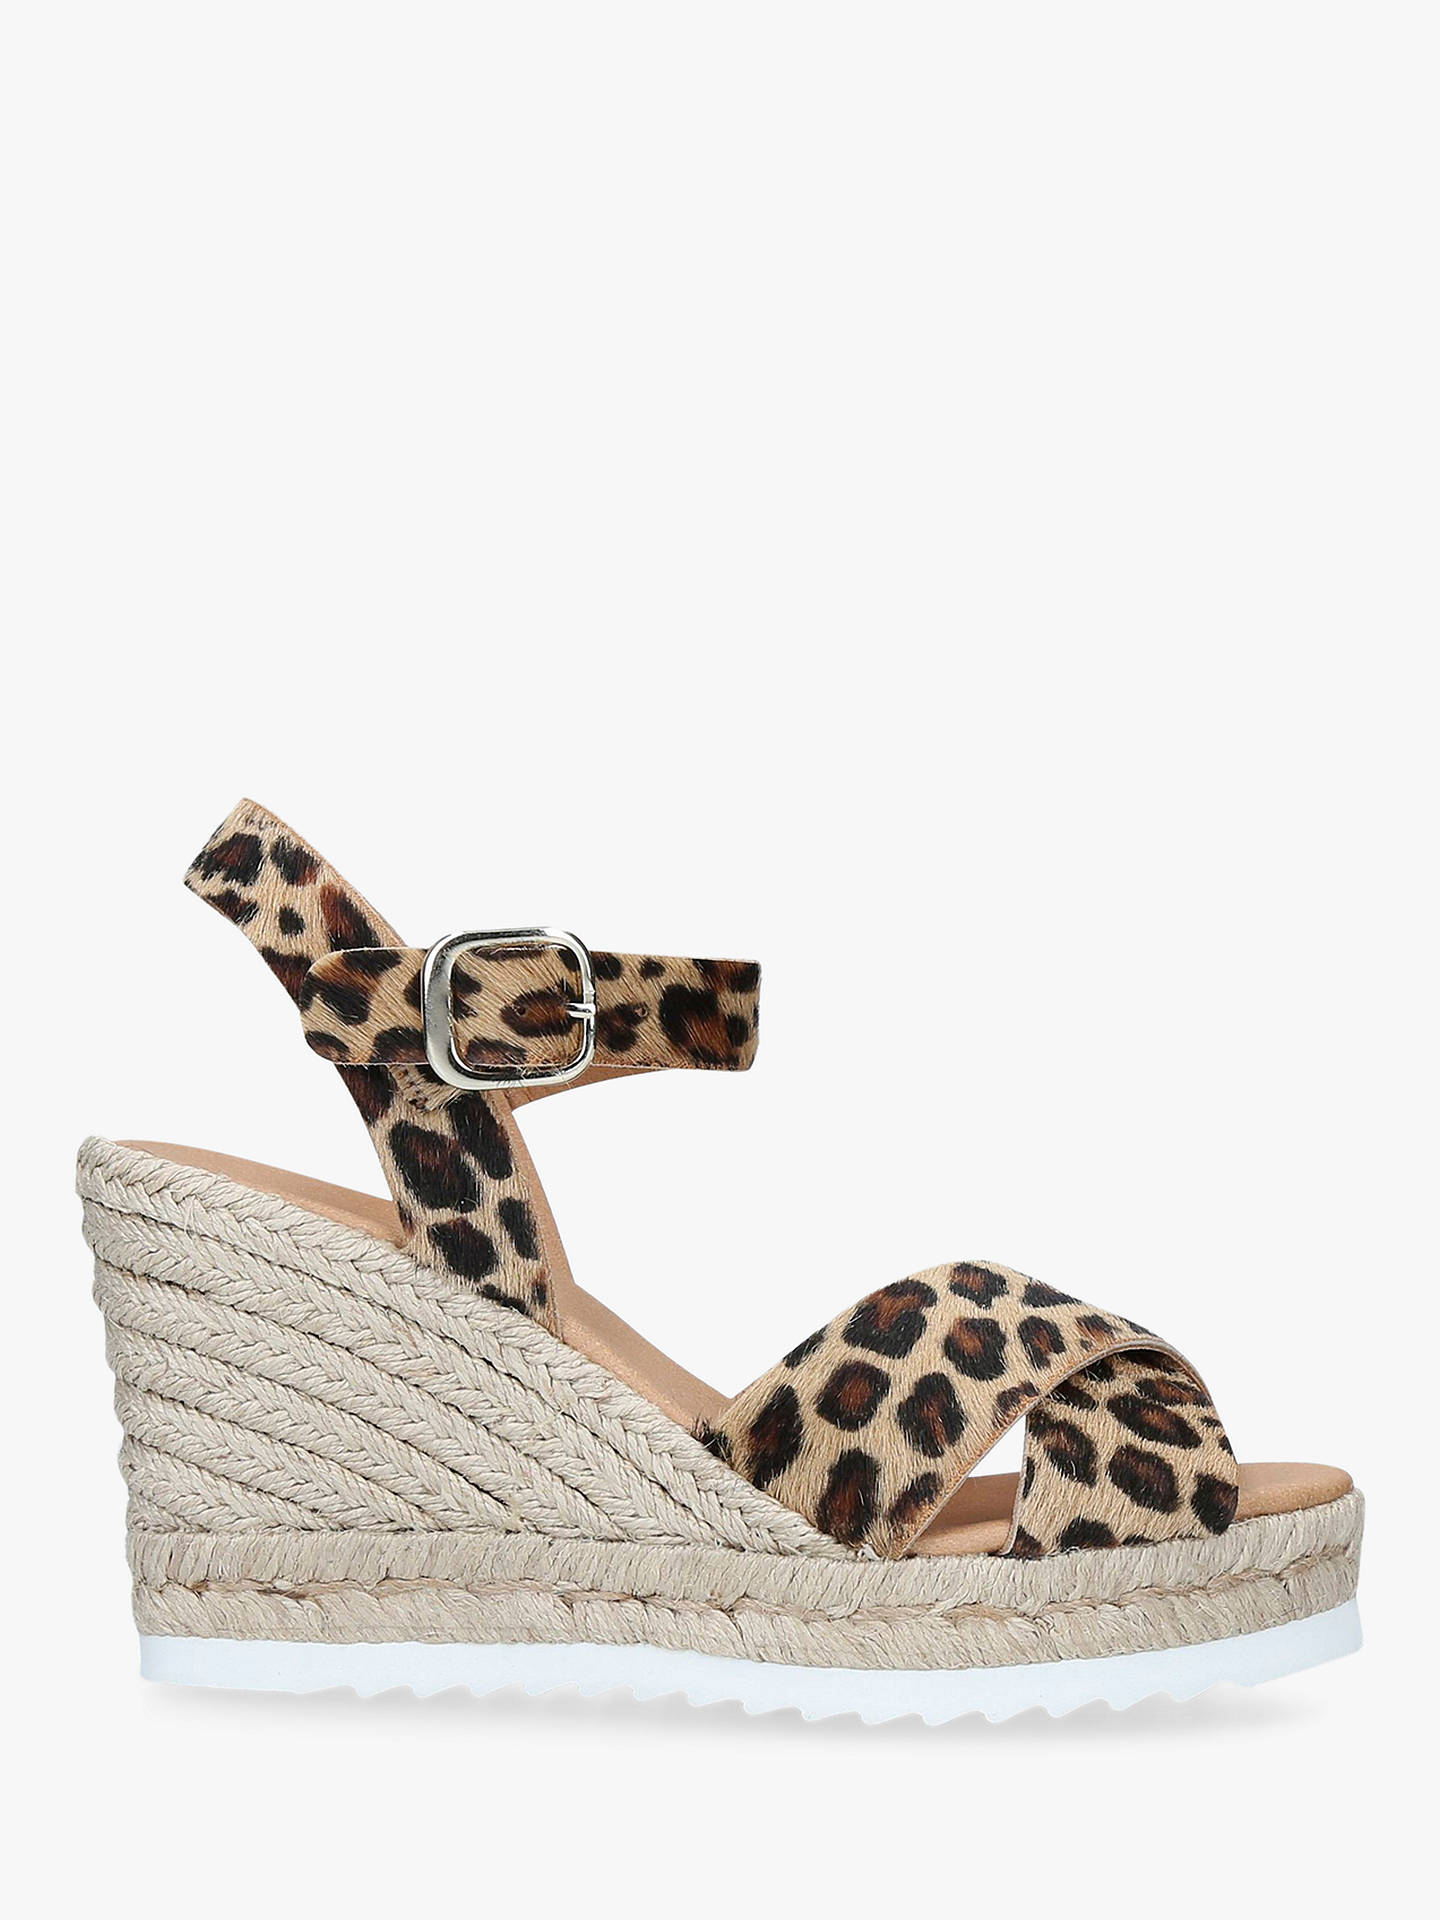 f913a16caa1 Carvela Koy Woven Wedge Leather Sandals, Brown/Multi